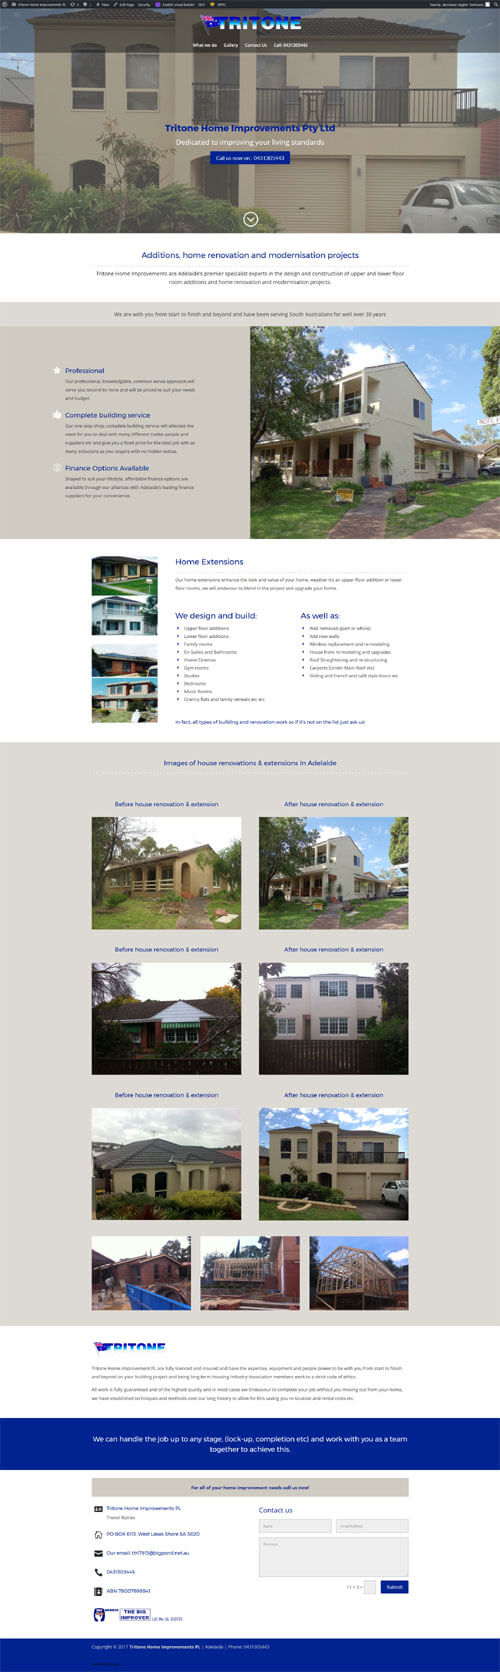 Website for Tritone Home Improvements Pty Ltd